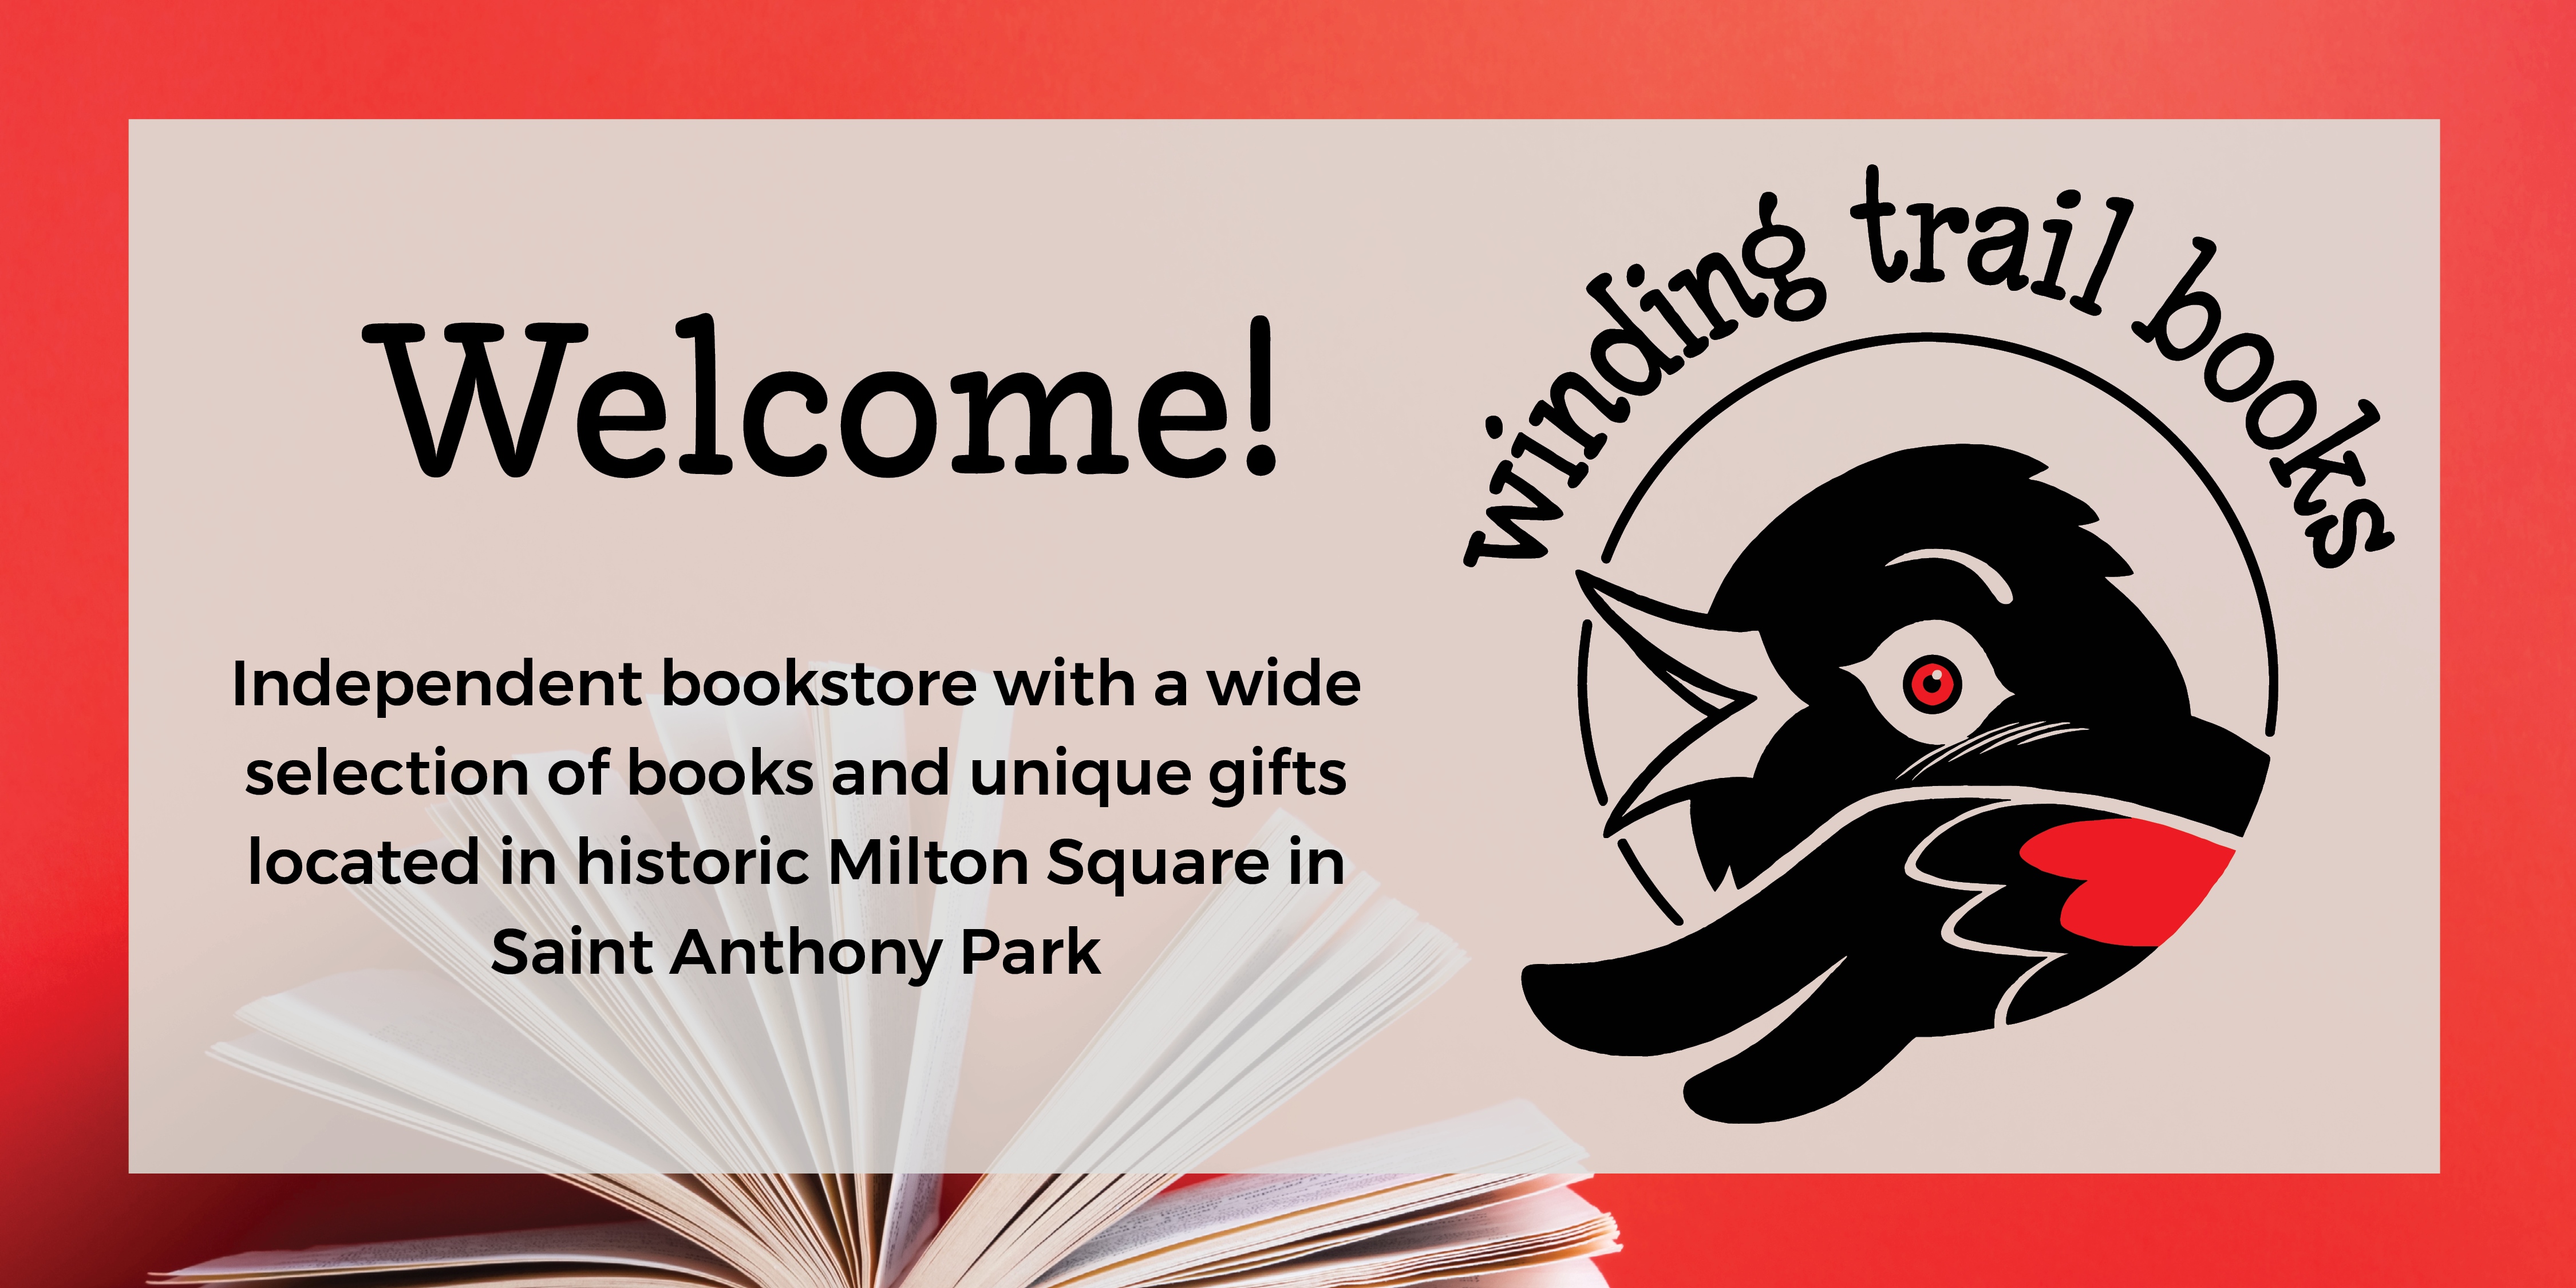 Welcome to Winding Trail Books